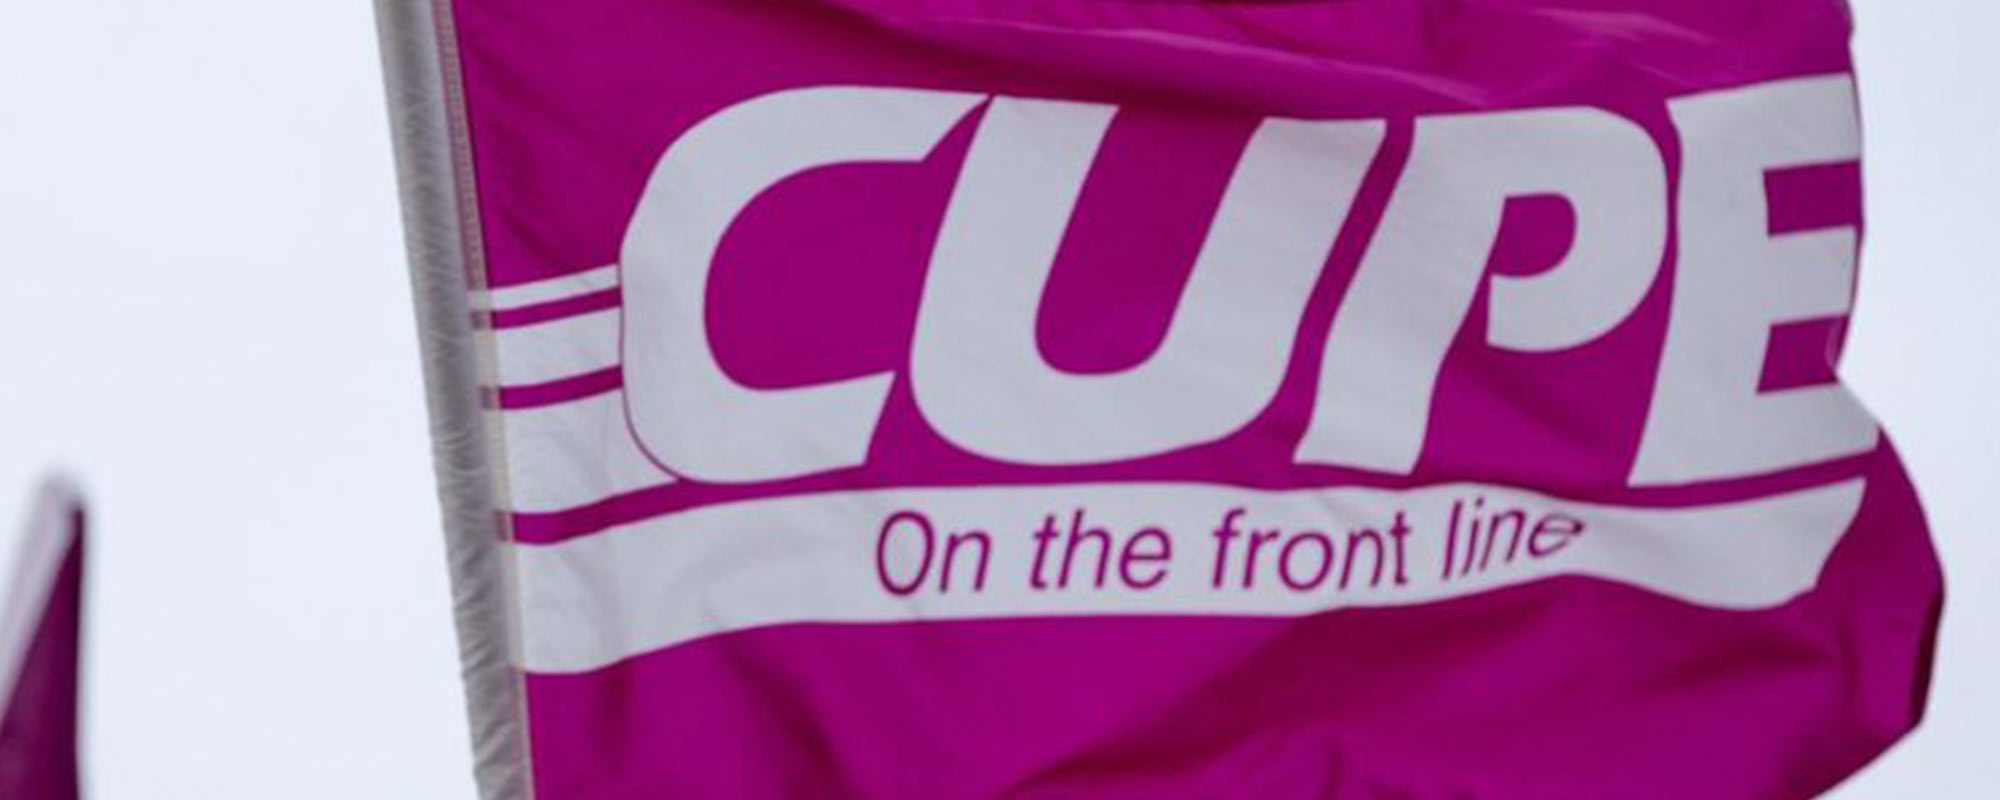 cupe-2268-on-front-line-education-saskaton